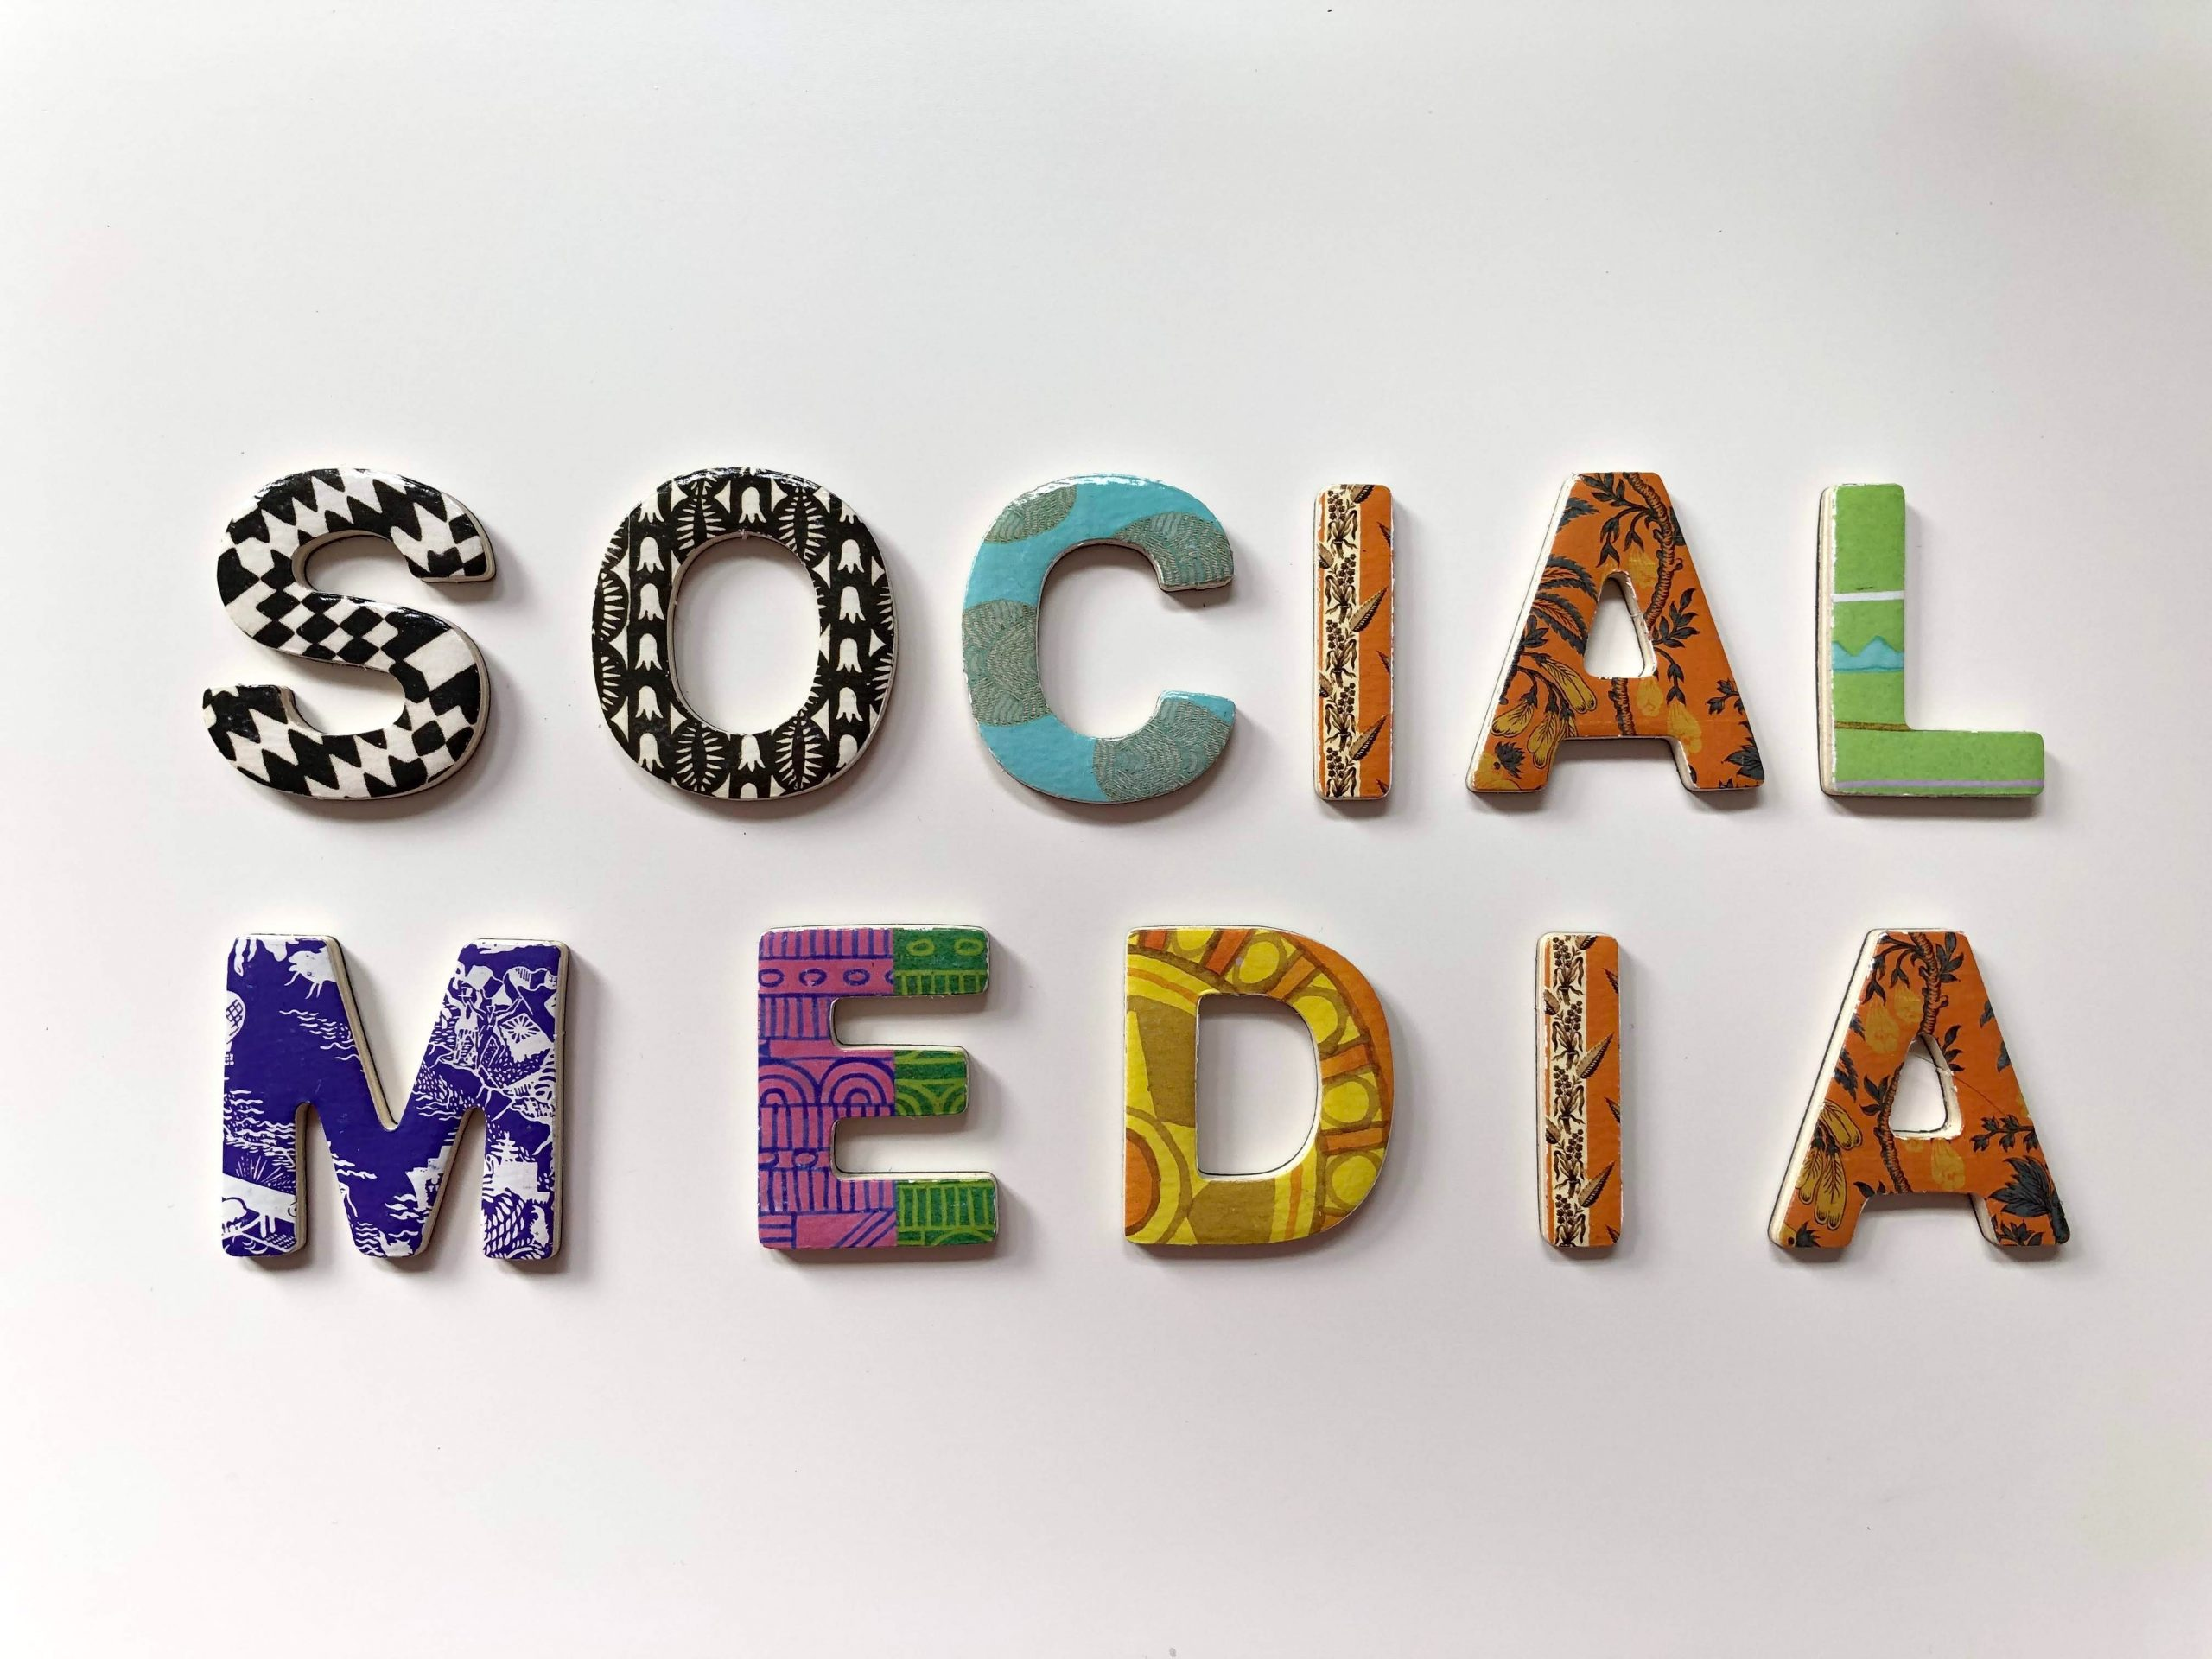 How to Improve Your Social Media Strategy